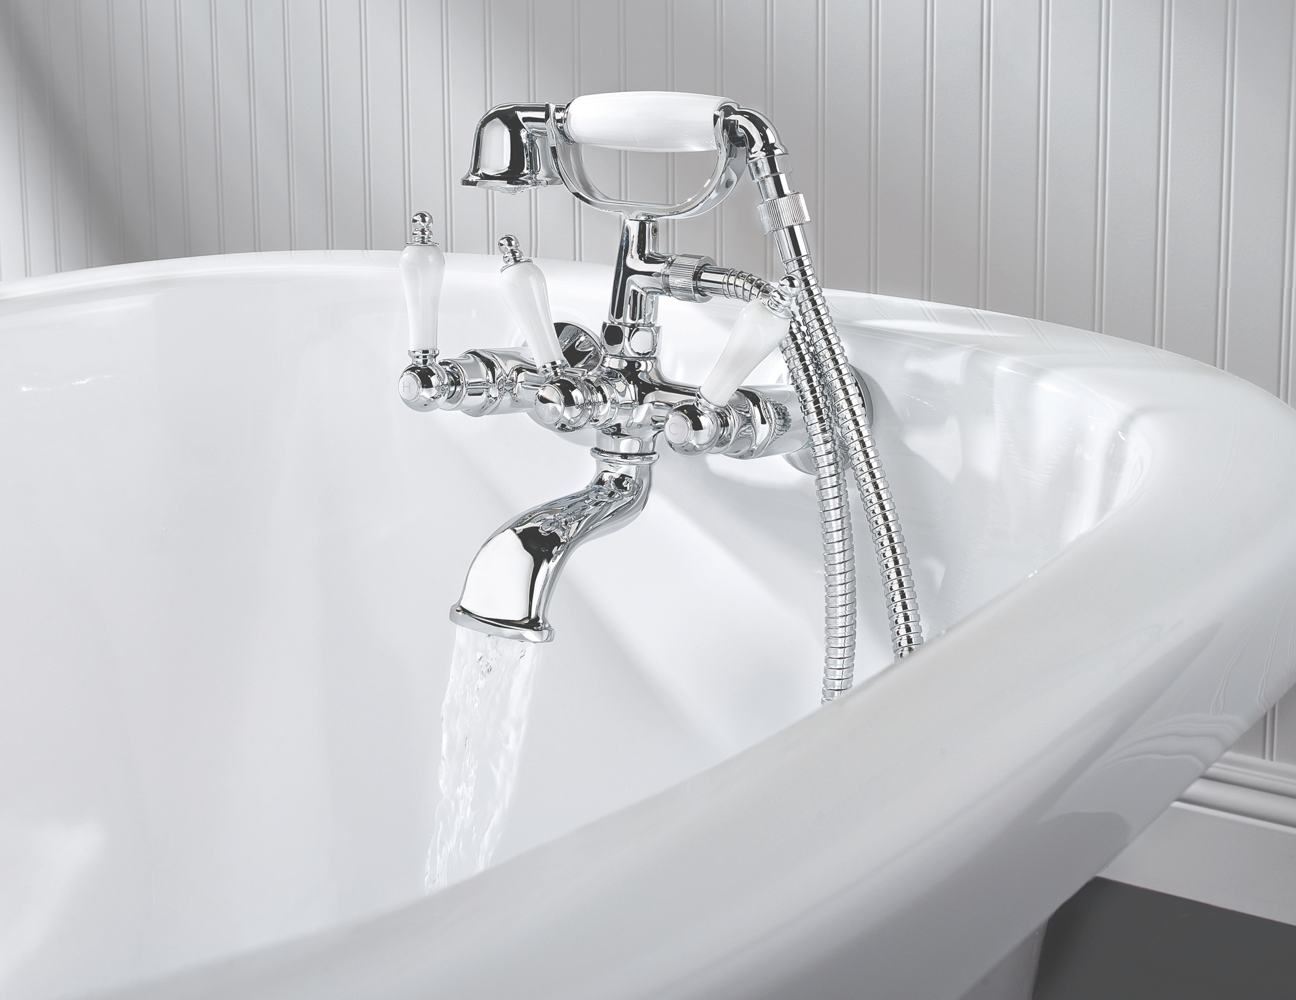 hight resolution of how high should the bathtub faucet generally be ysis of